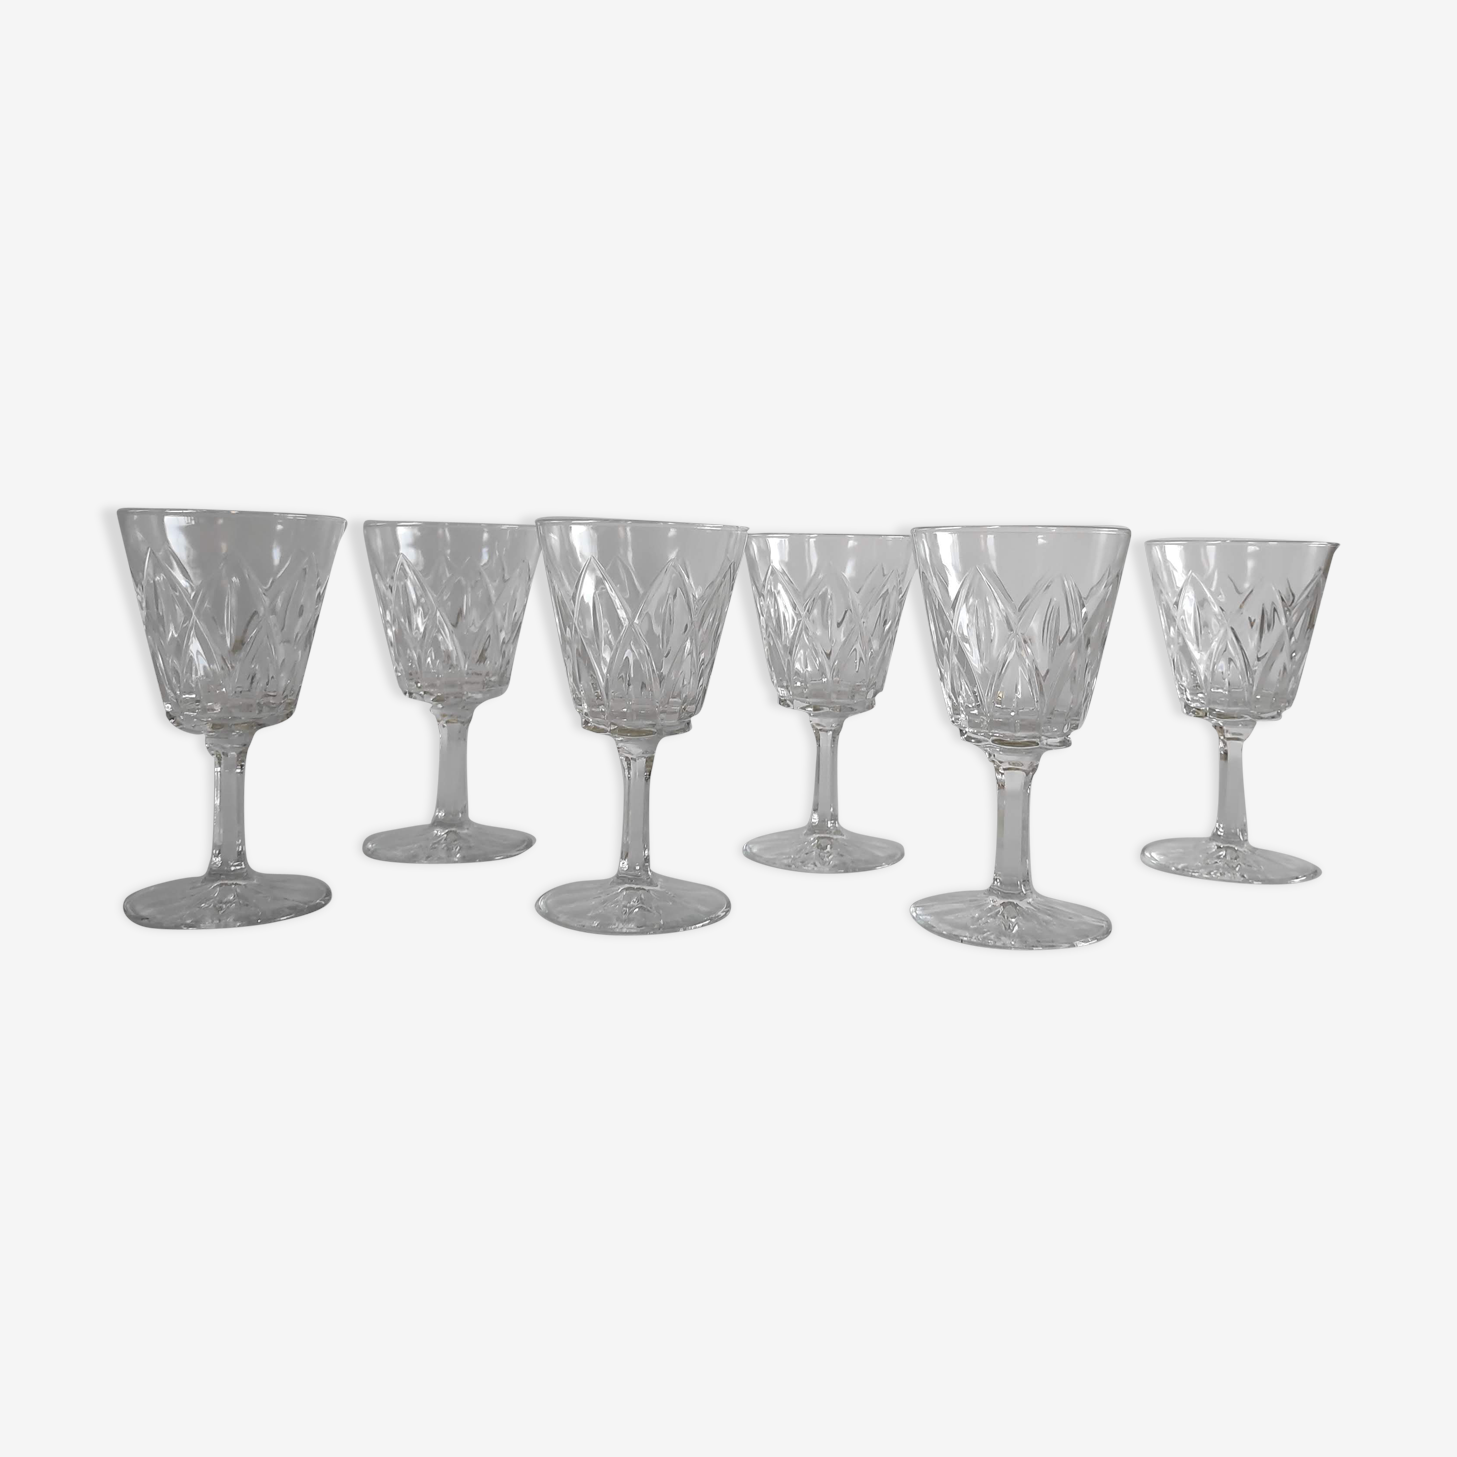 6 water goblets vintage in cast glass in the 1960s